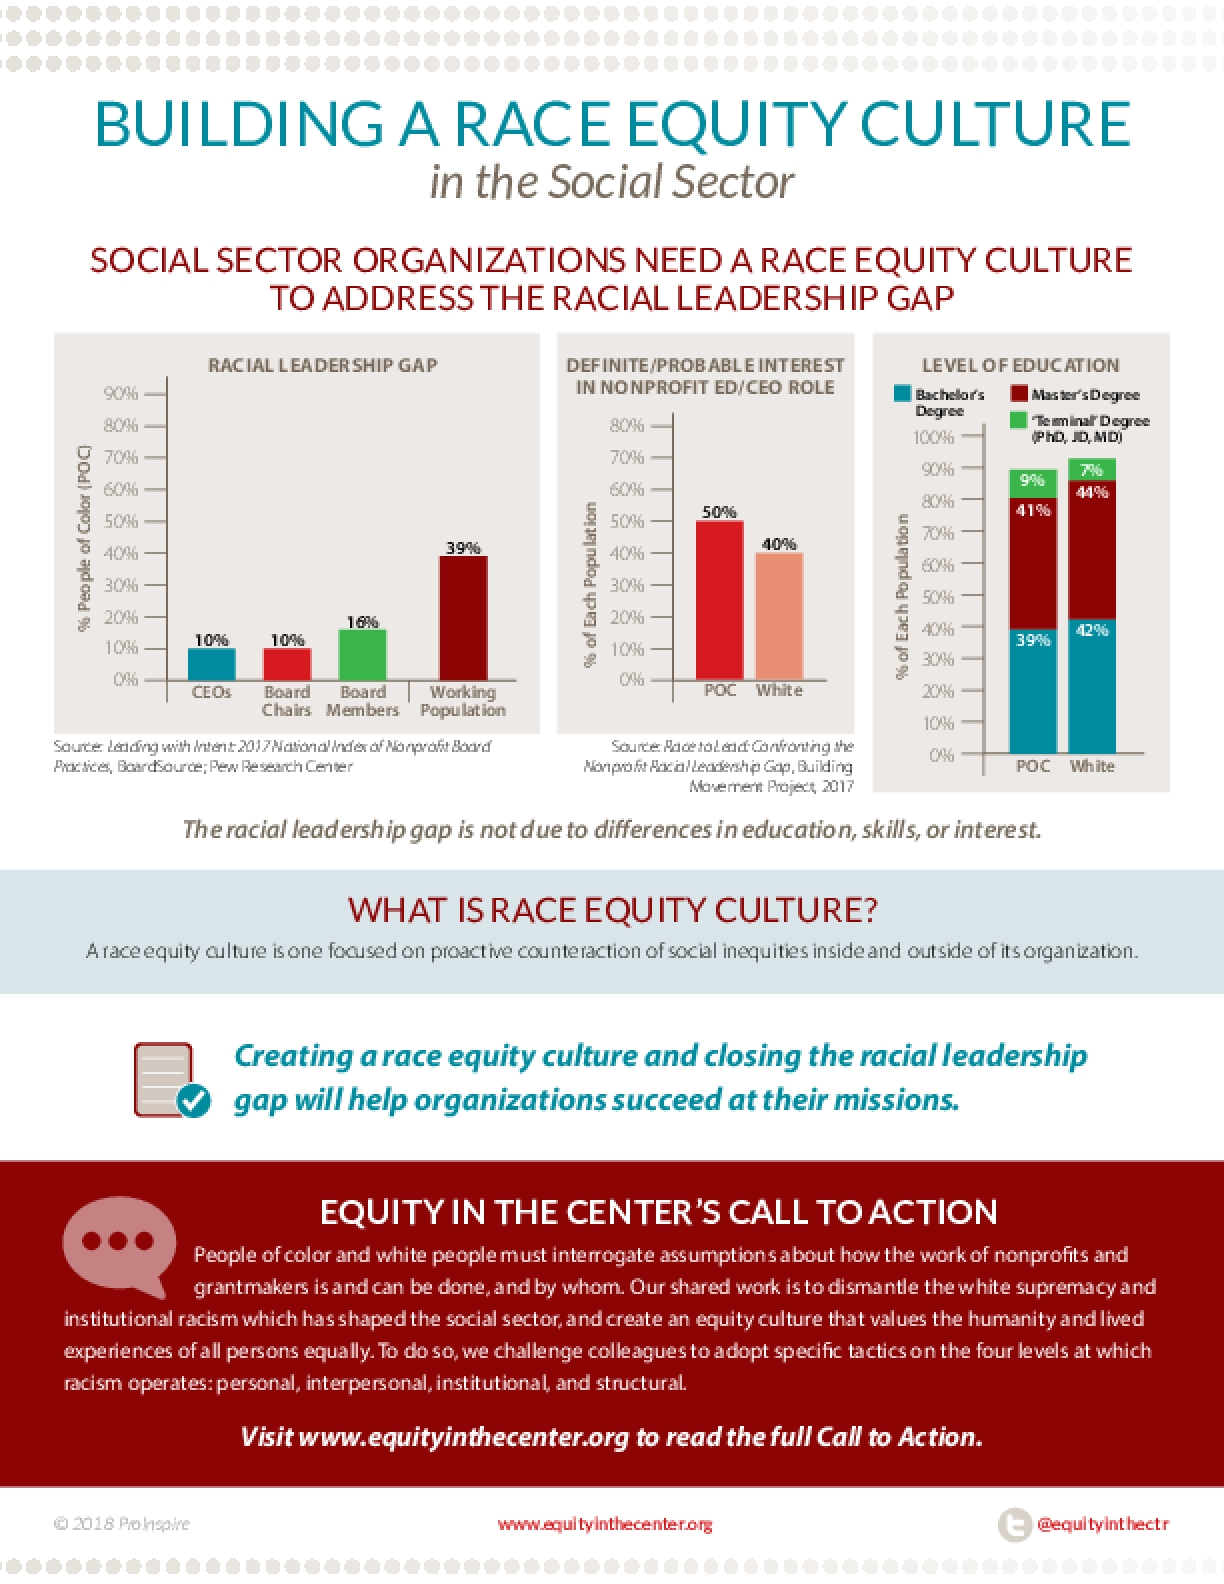 Building a Race Equity Culture in the Social Sector